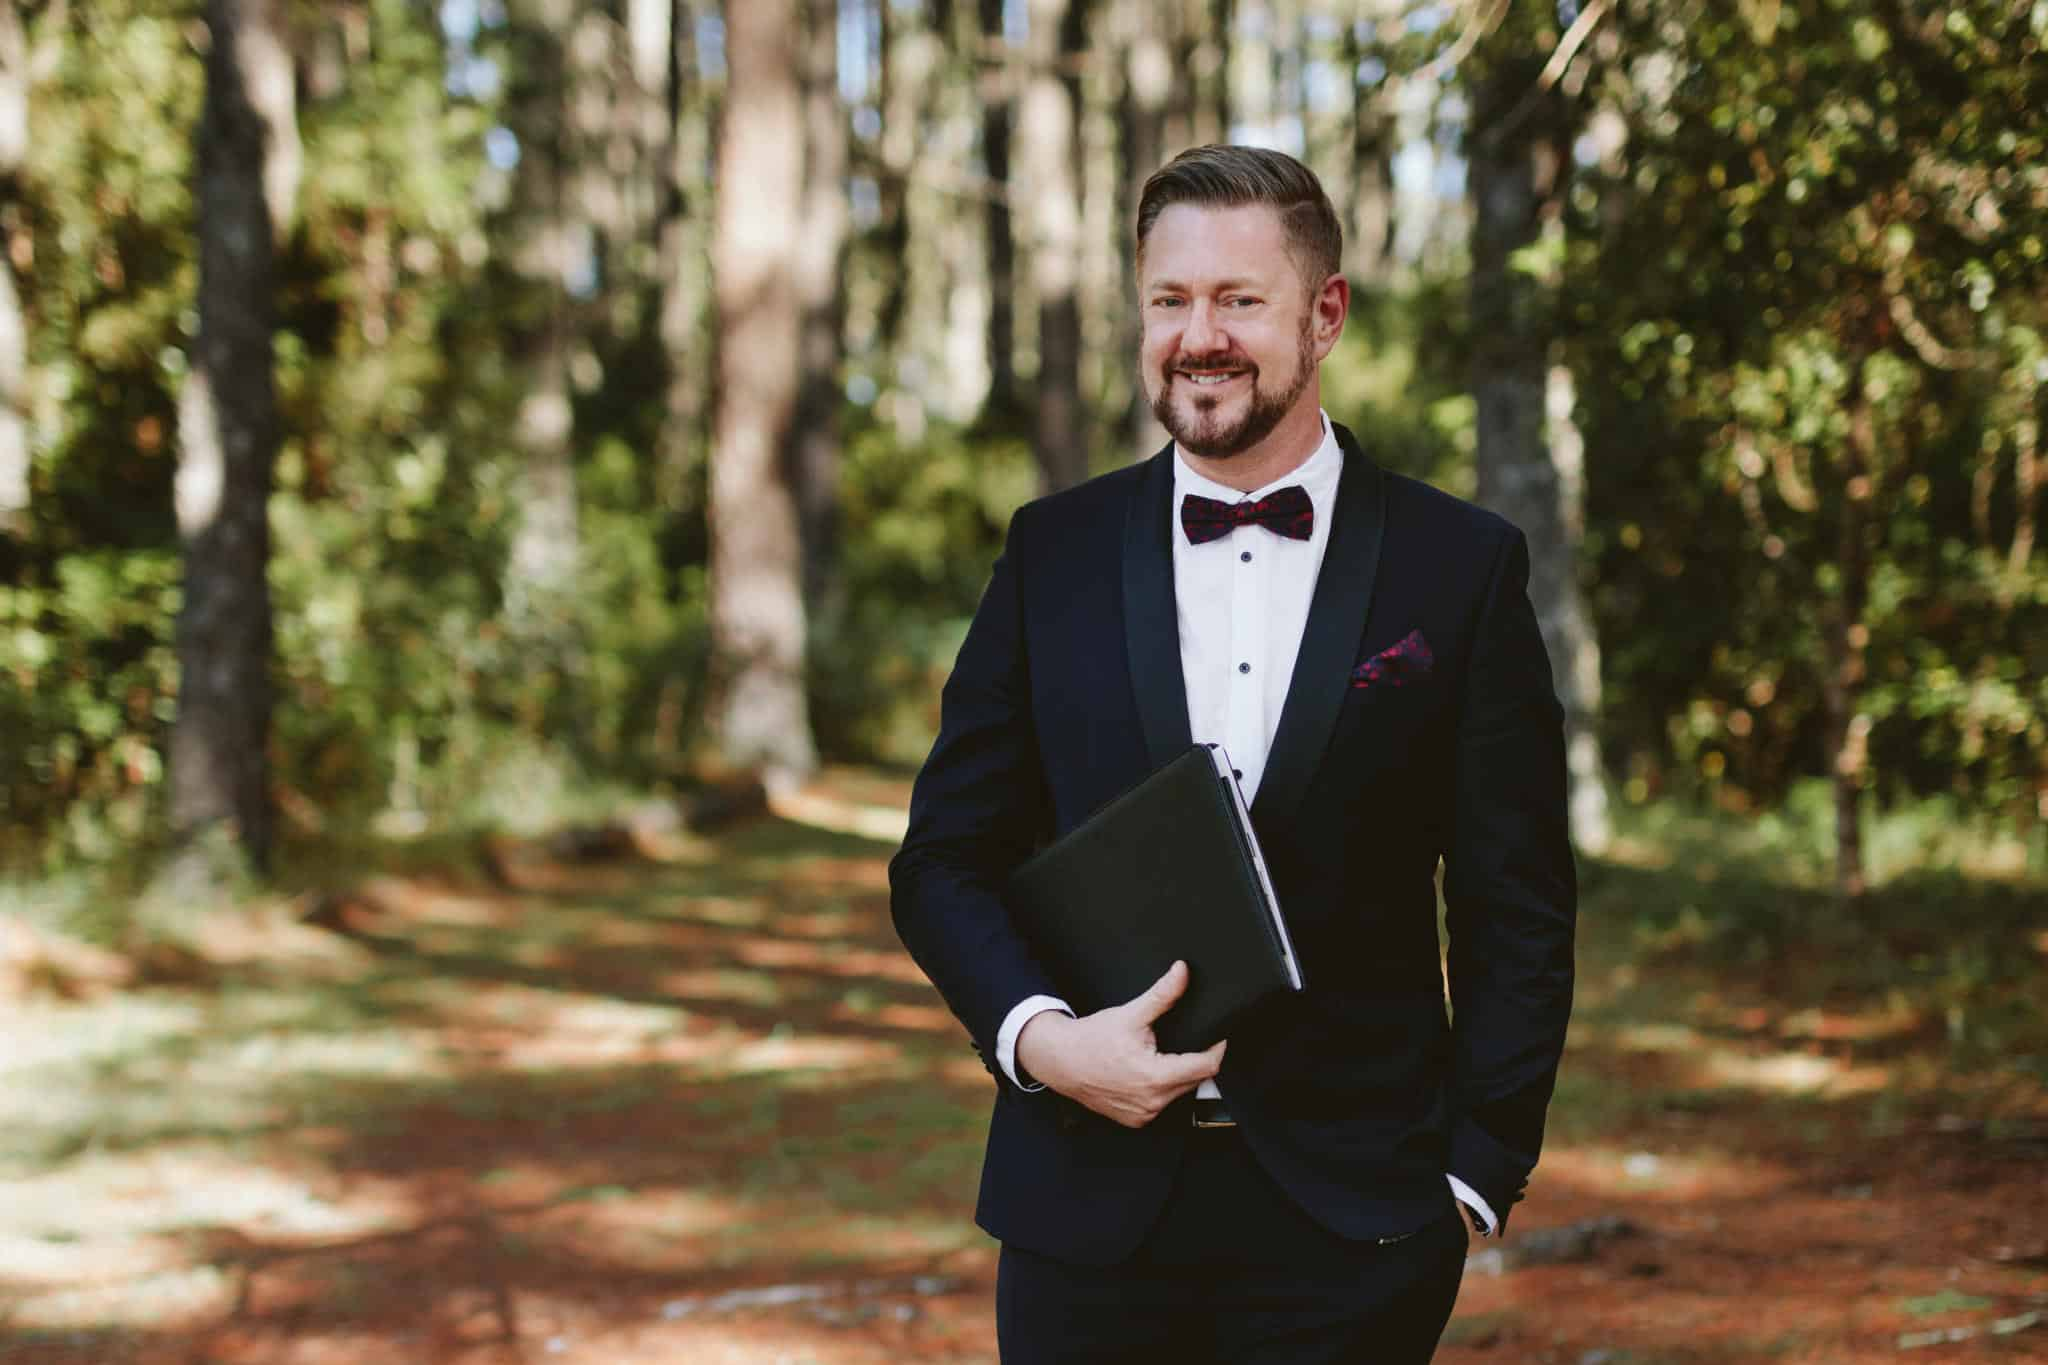 Woodland Wedding - Stephen Lee Sydney Marriage Celebrant Male